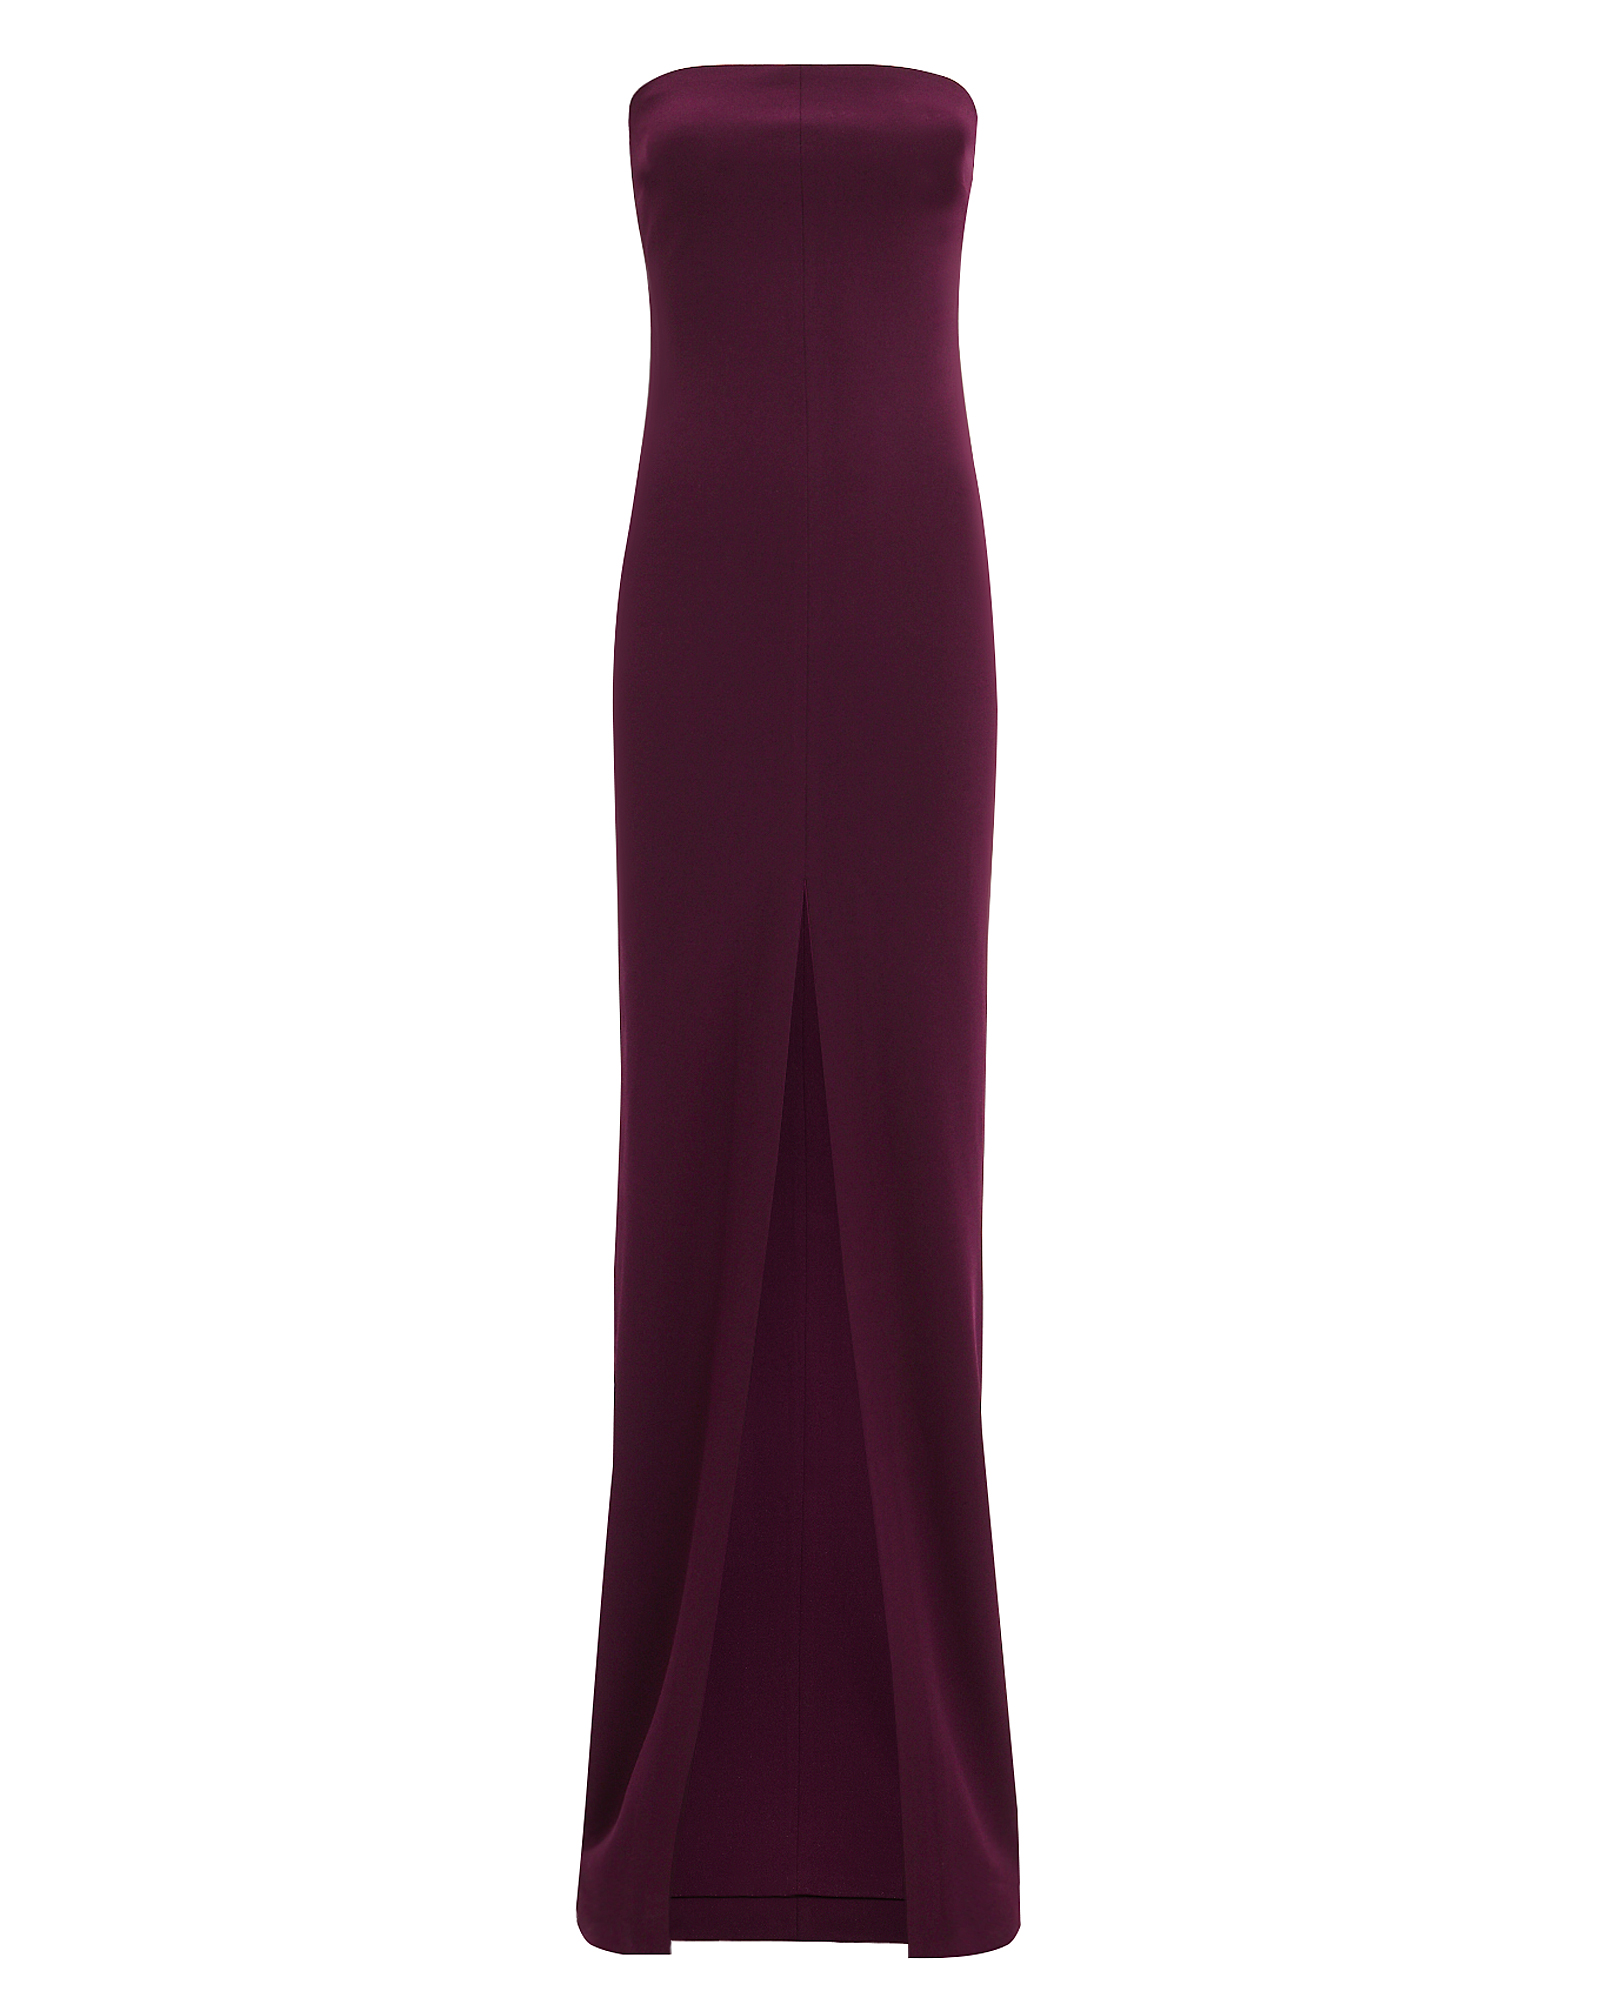 SOLACE London Bysha Aubergine Strapless Gown Aubergine